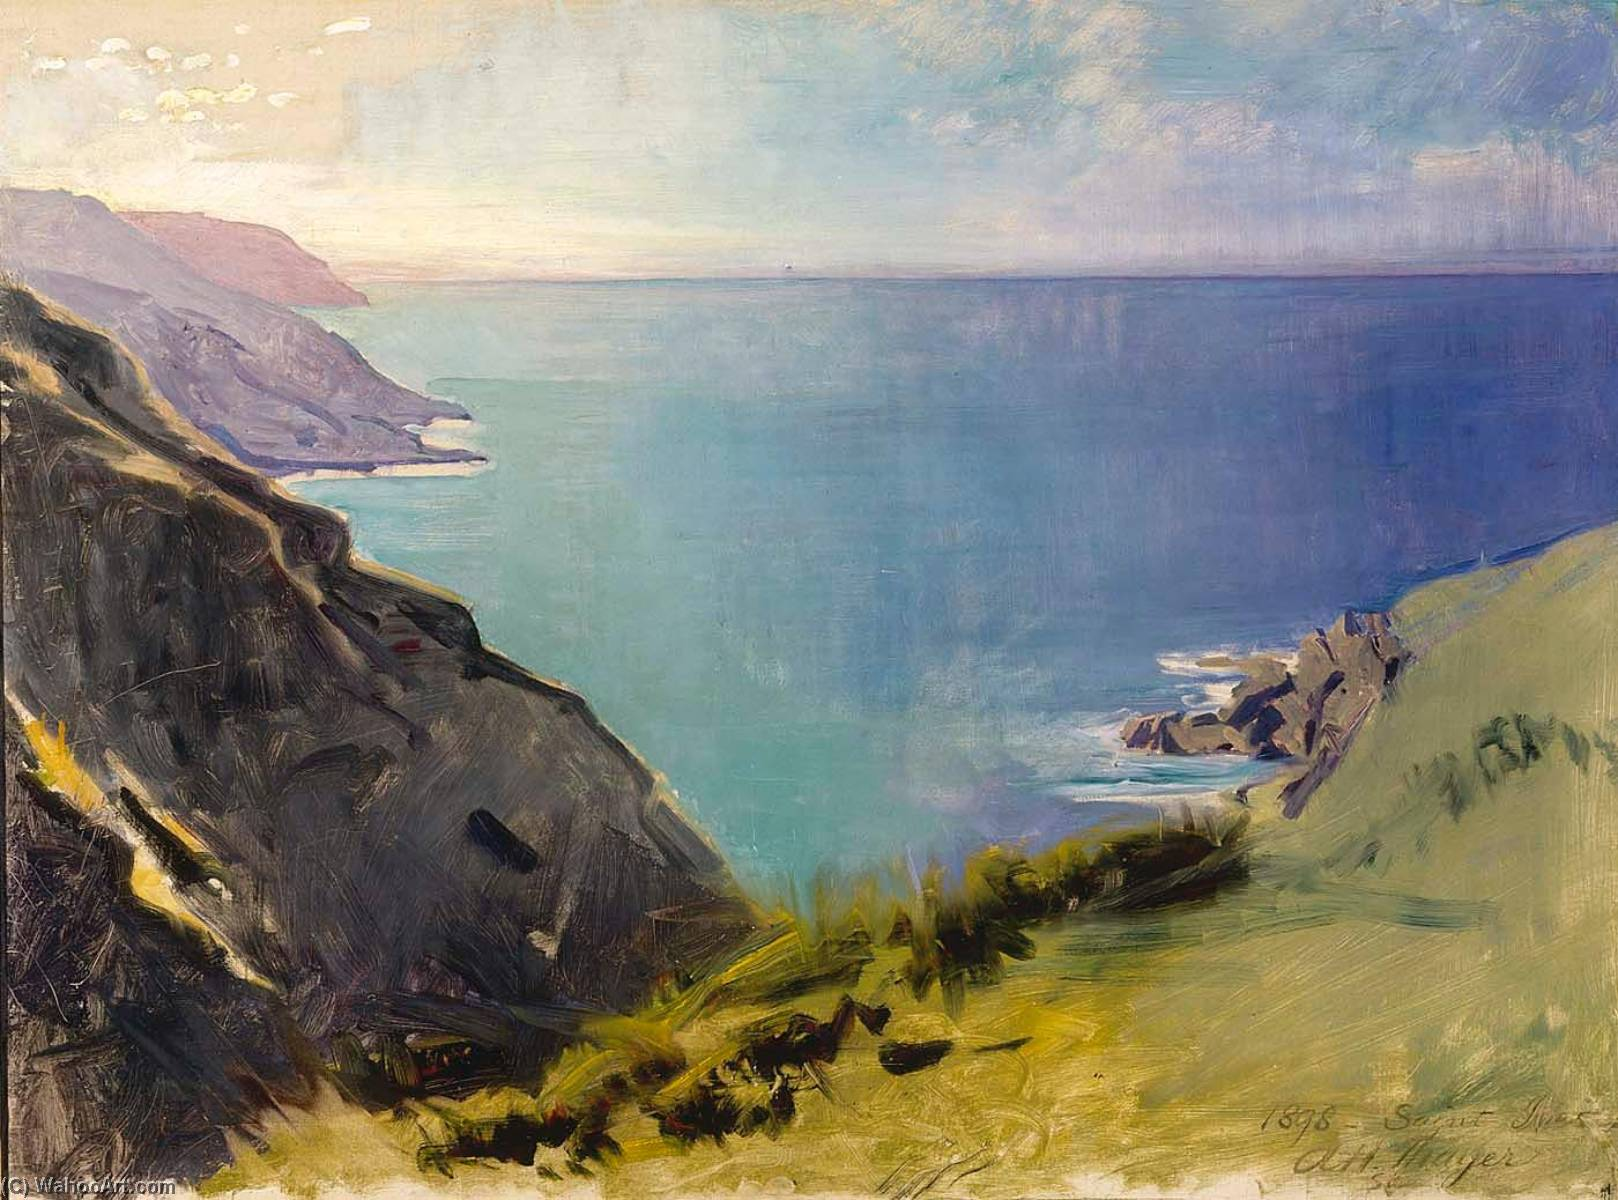 headlands cornish, óleo sobre tela por Abbott Handerson Thayer (1849-1921, United States)